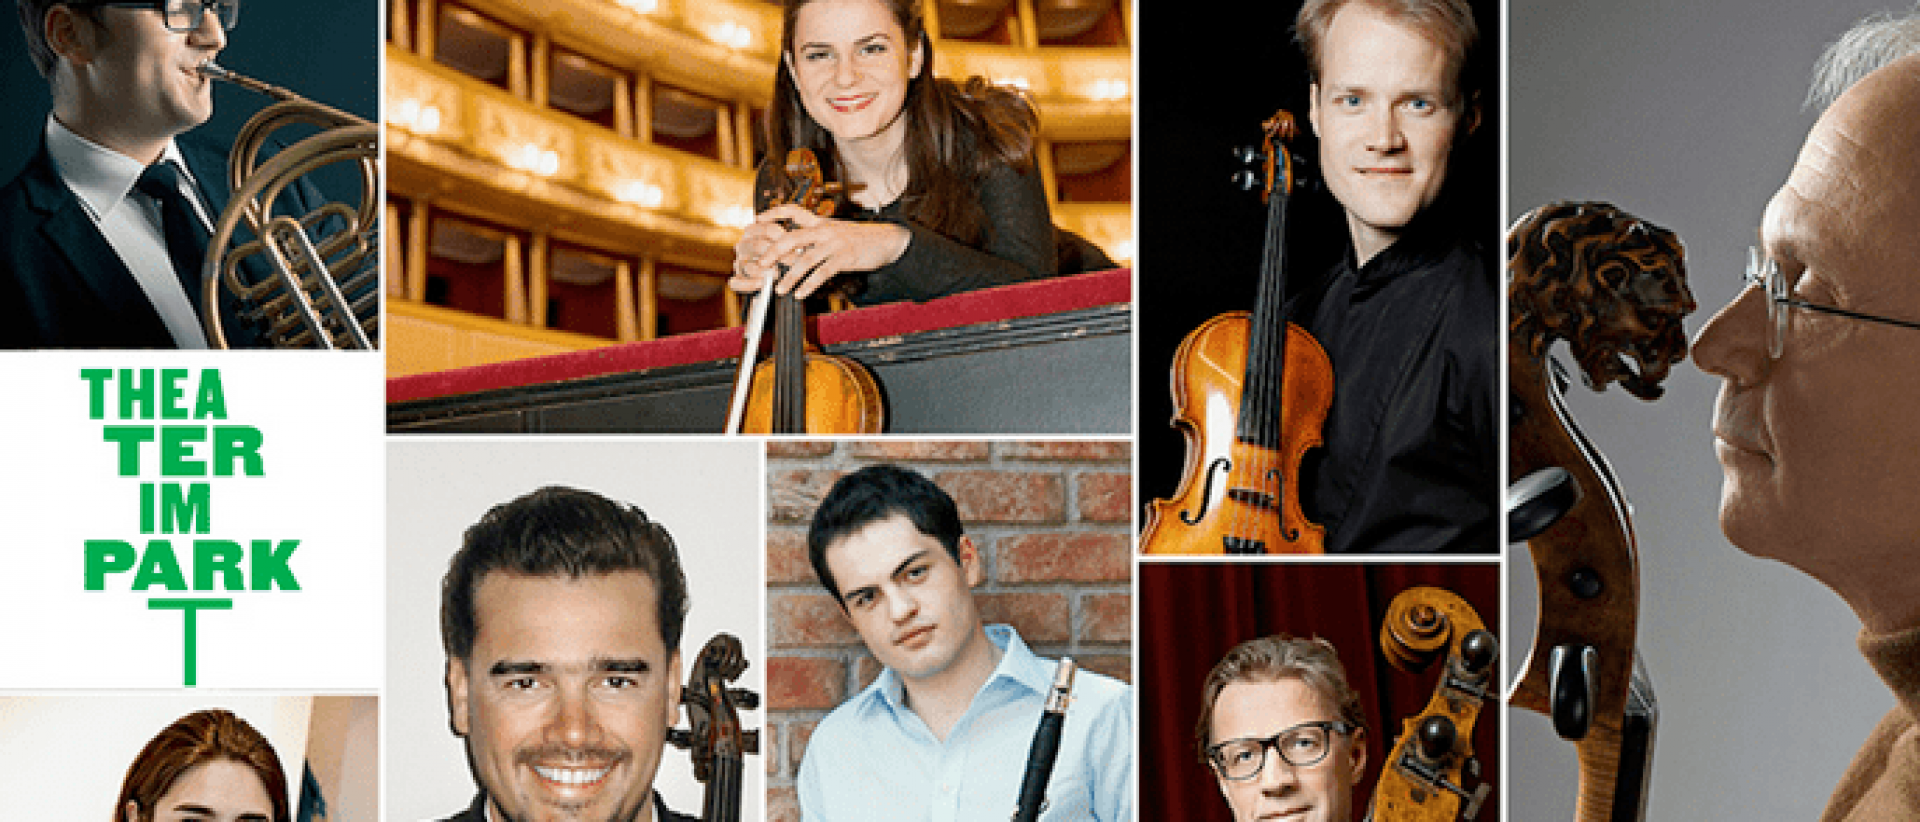 Soloists of the Vienna Philharmonic Orchestra